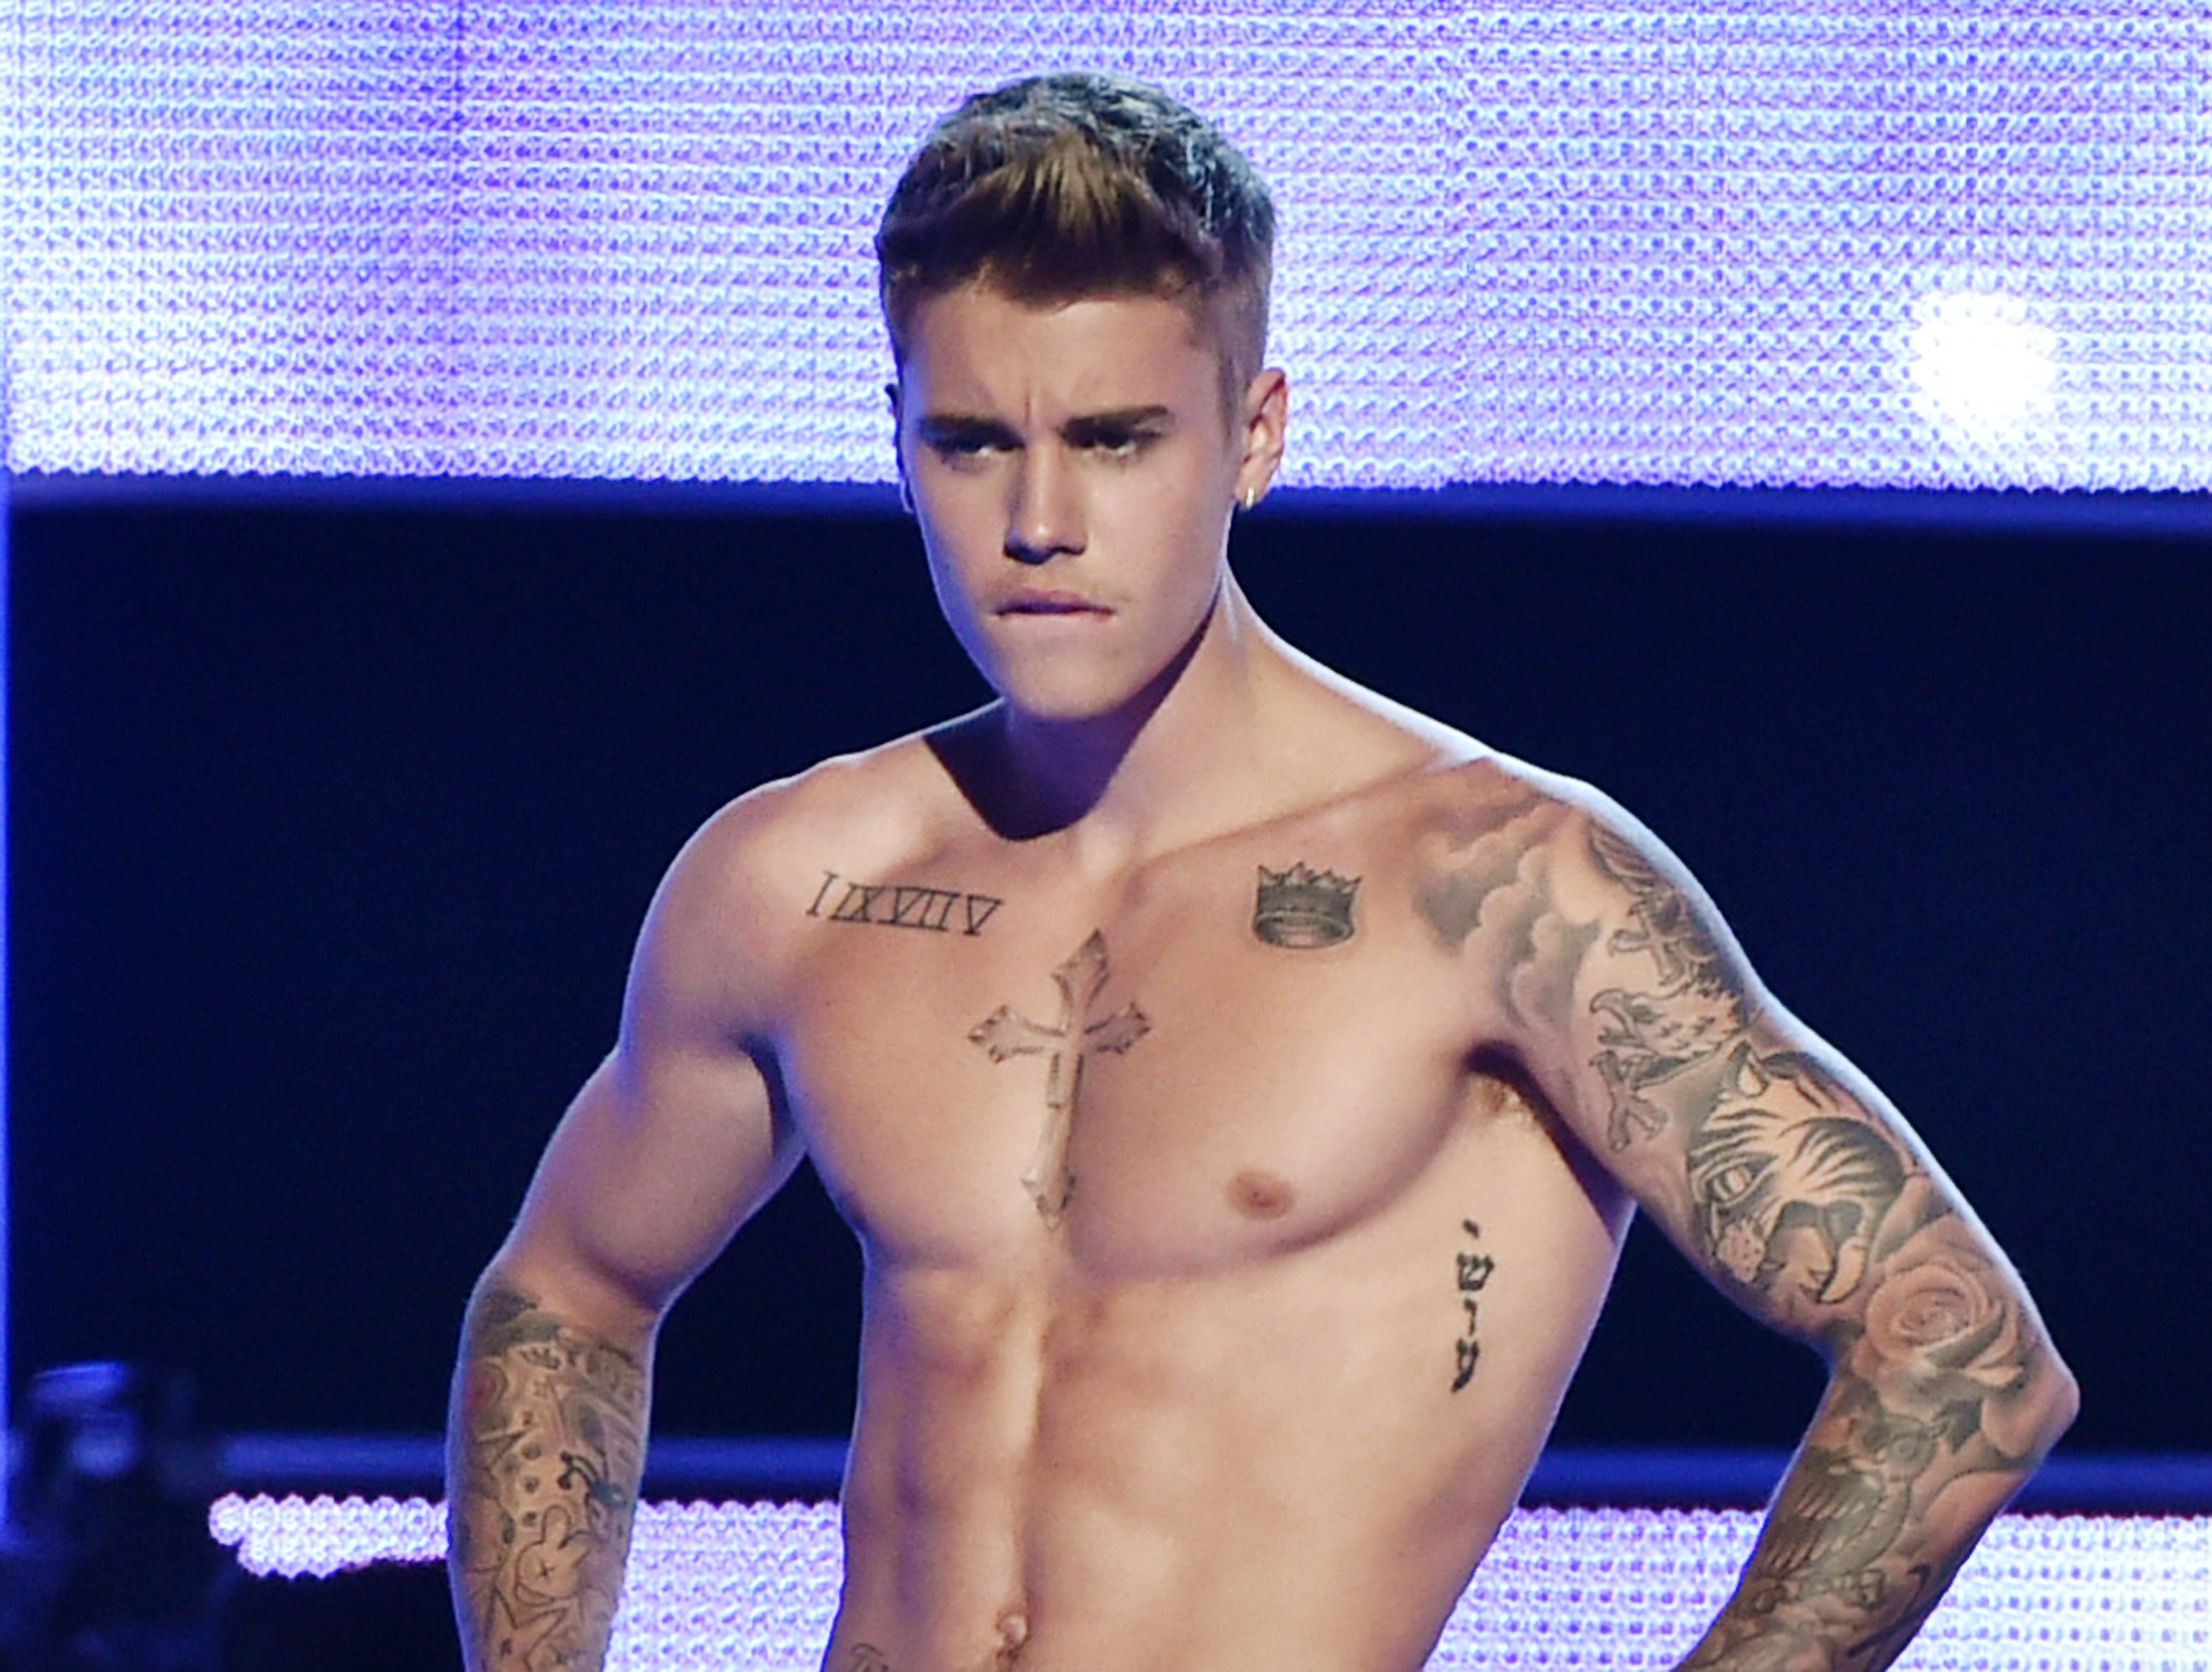 Justin Bieber Getting Comedy Central Roast